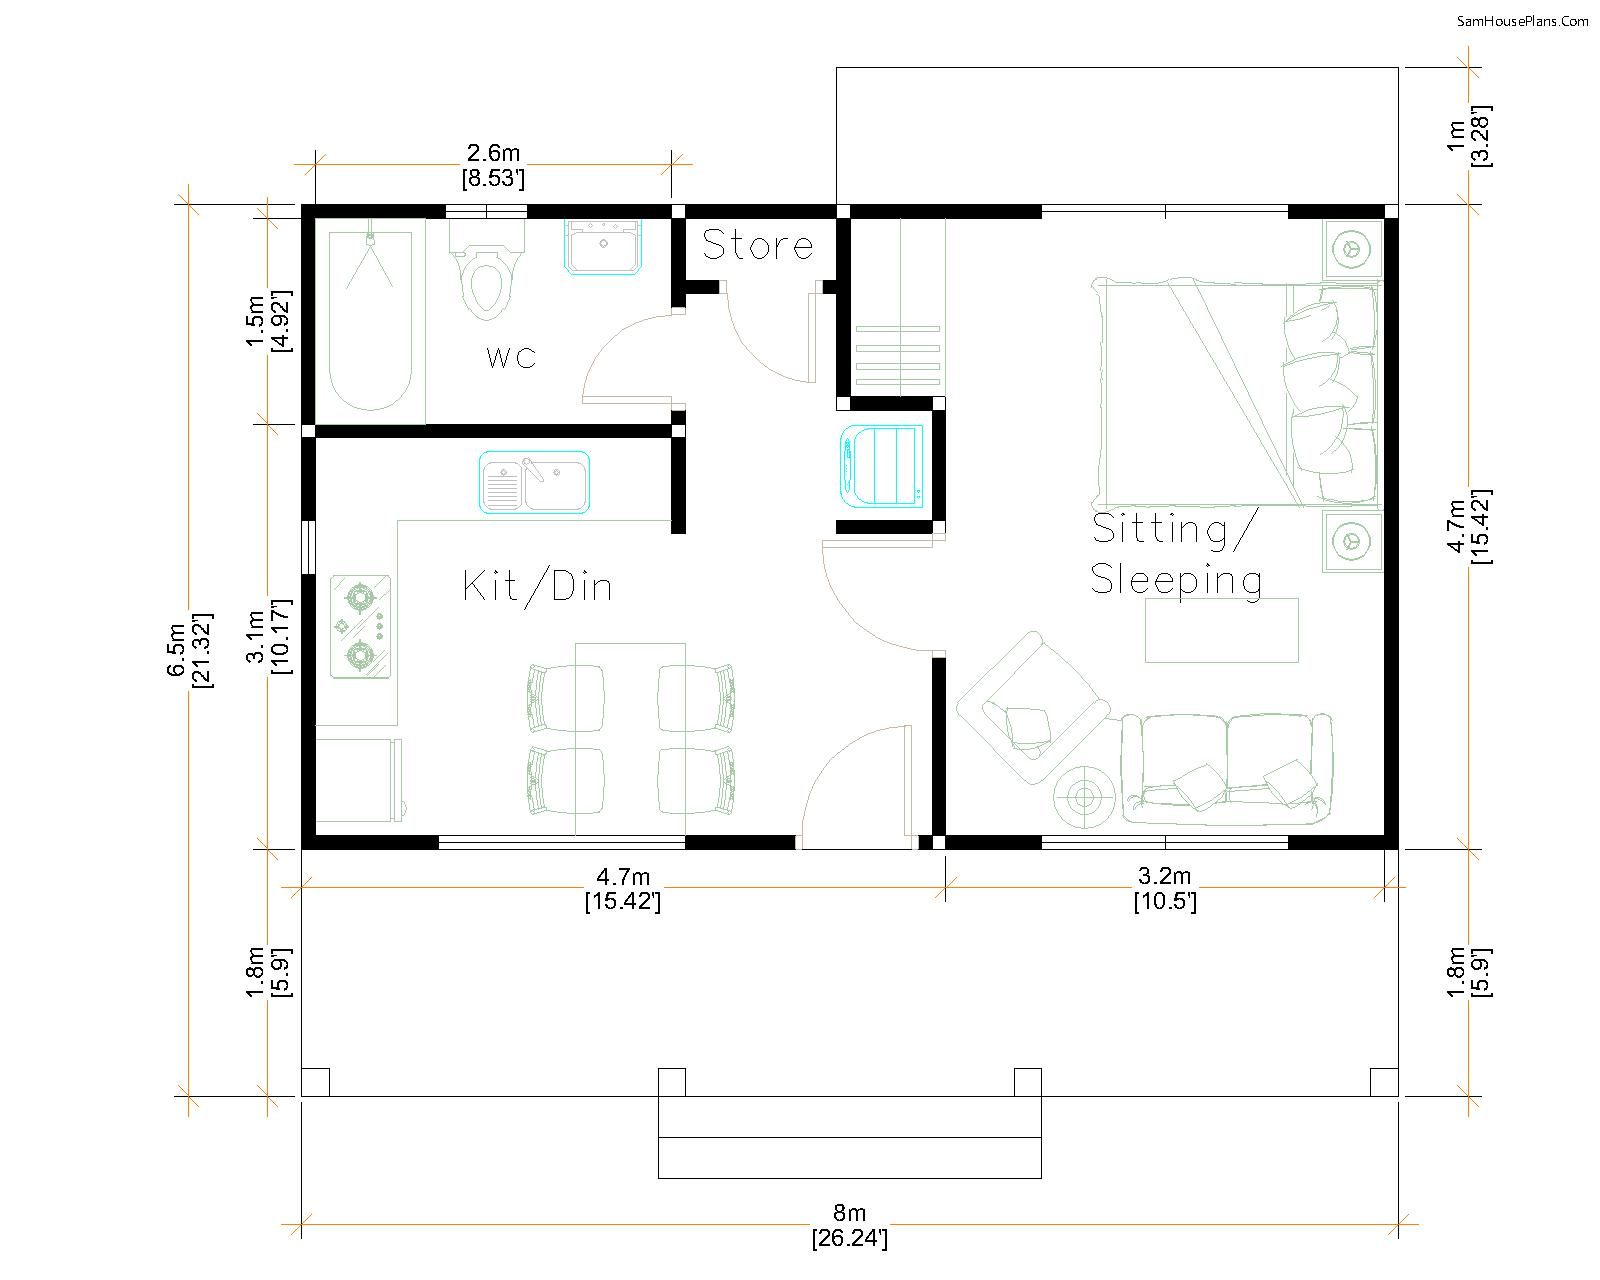 House Design Plans 5x7 with One Bedroom Shed Roof